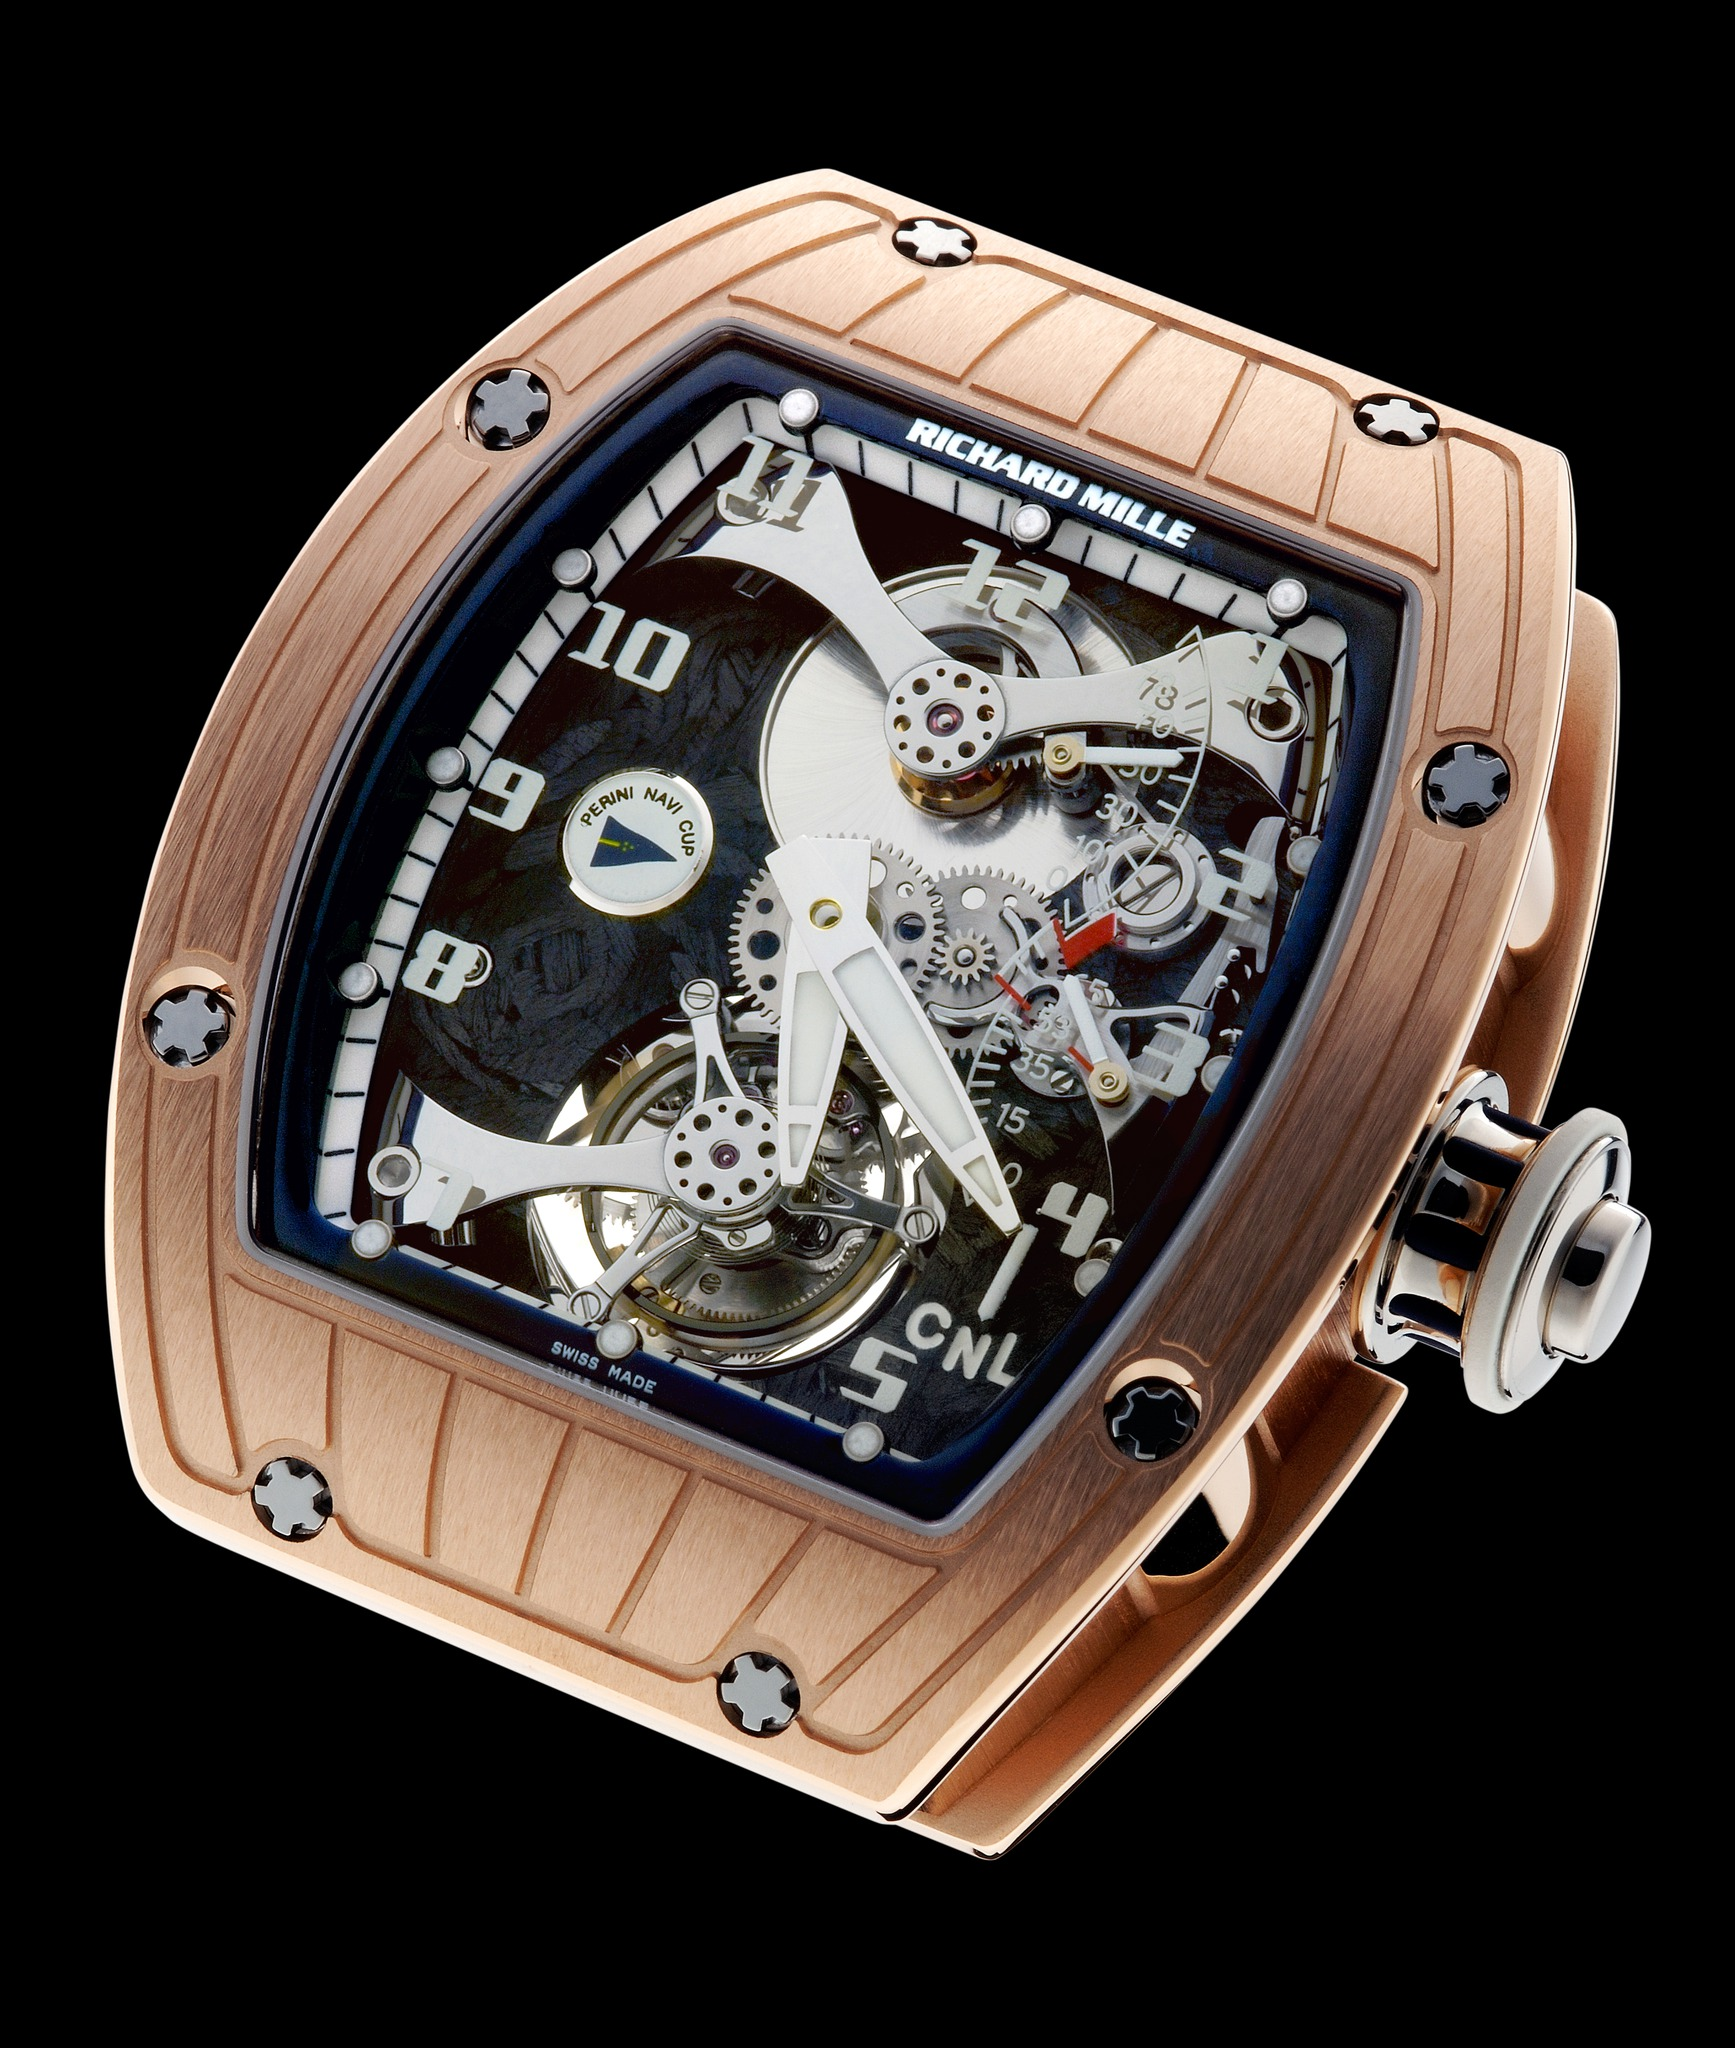 Replica Richard Mille RM 014 Perini Navi Cup Red Gold Watch